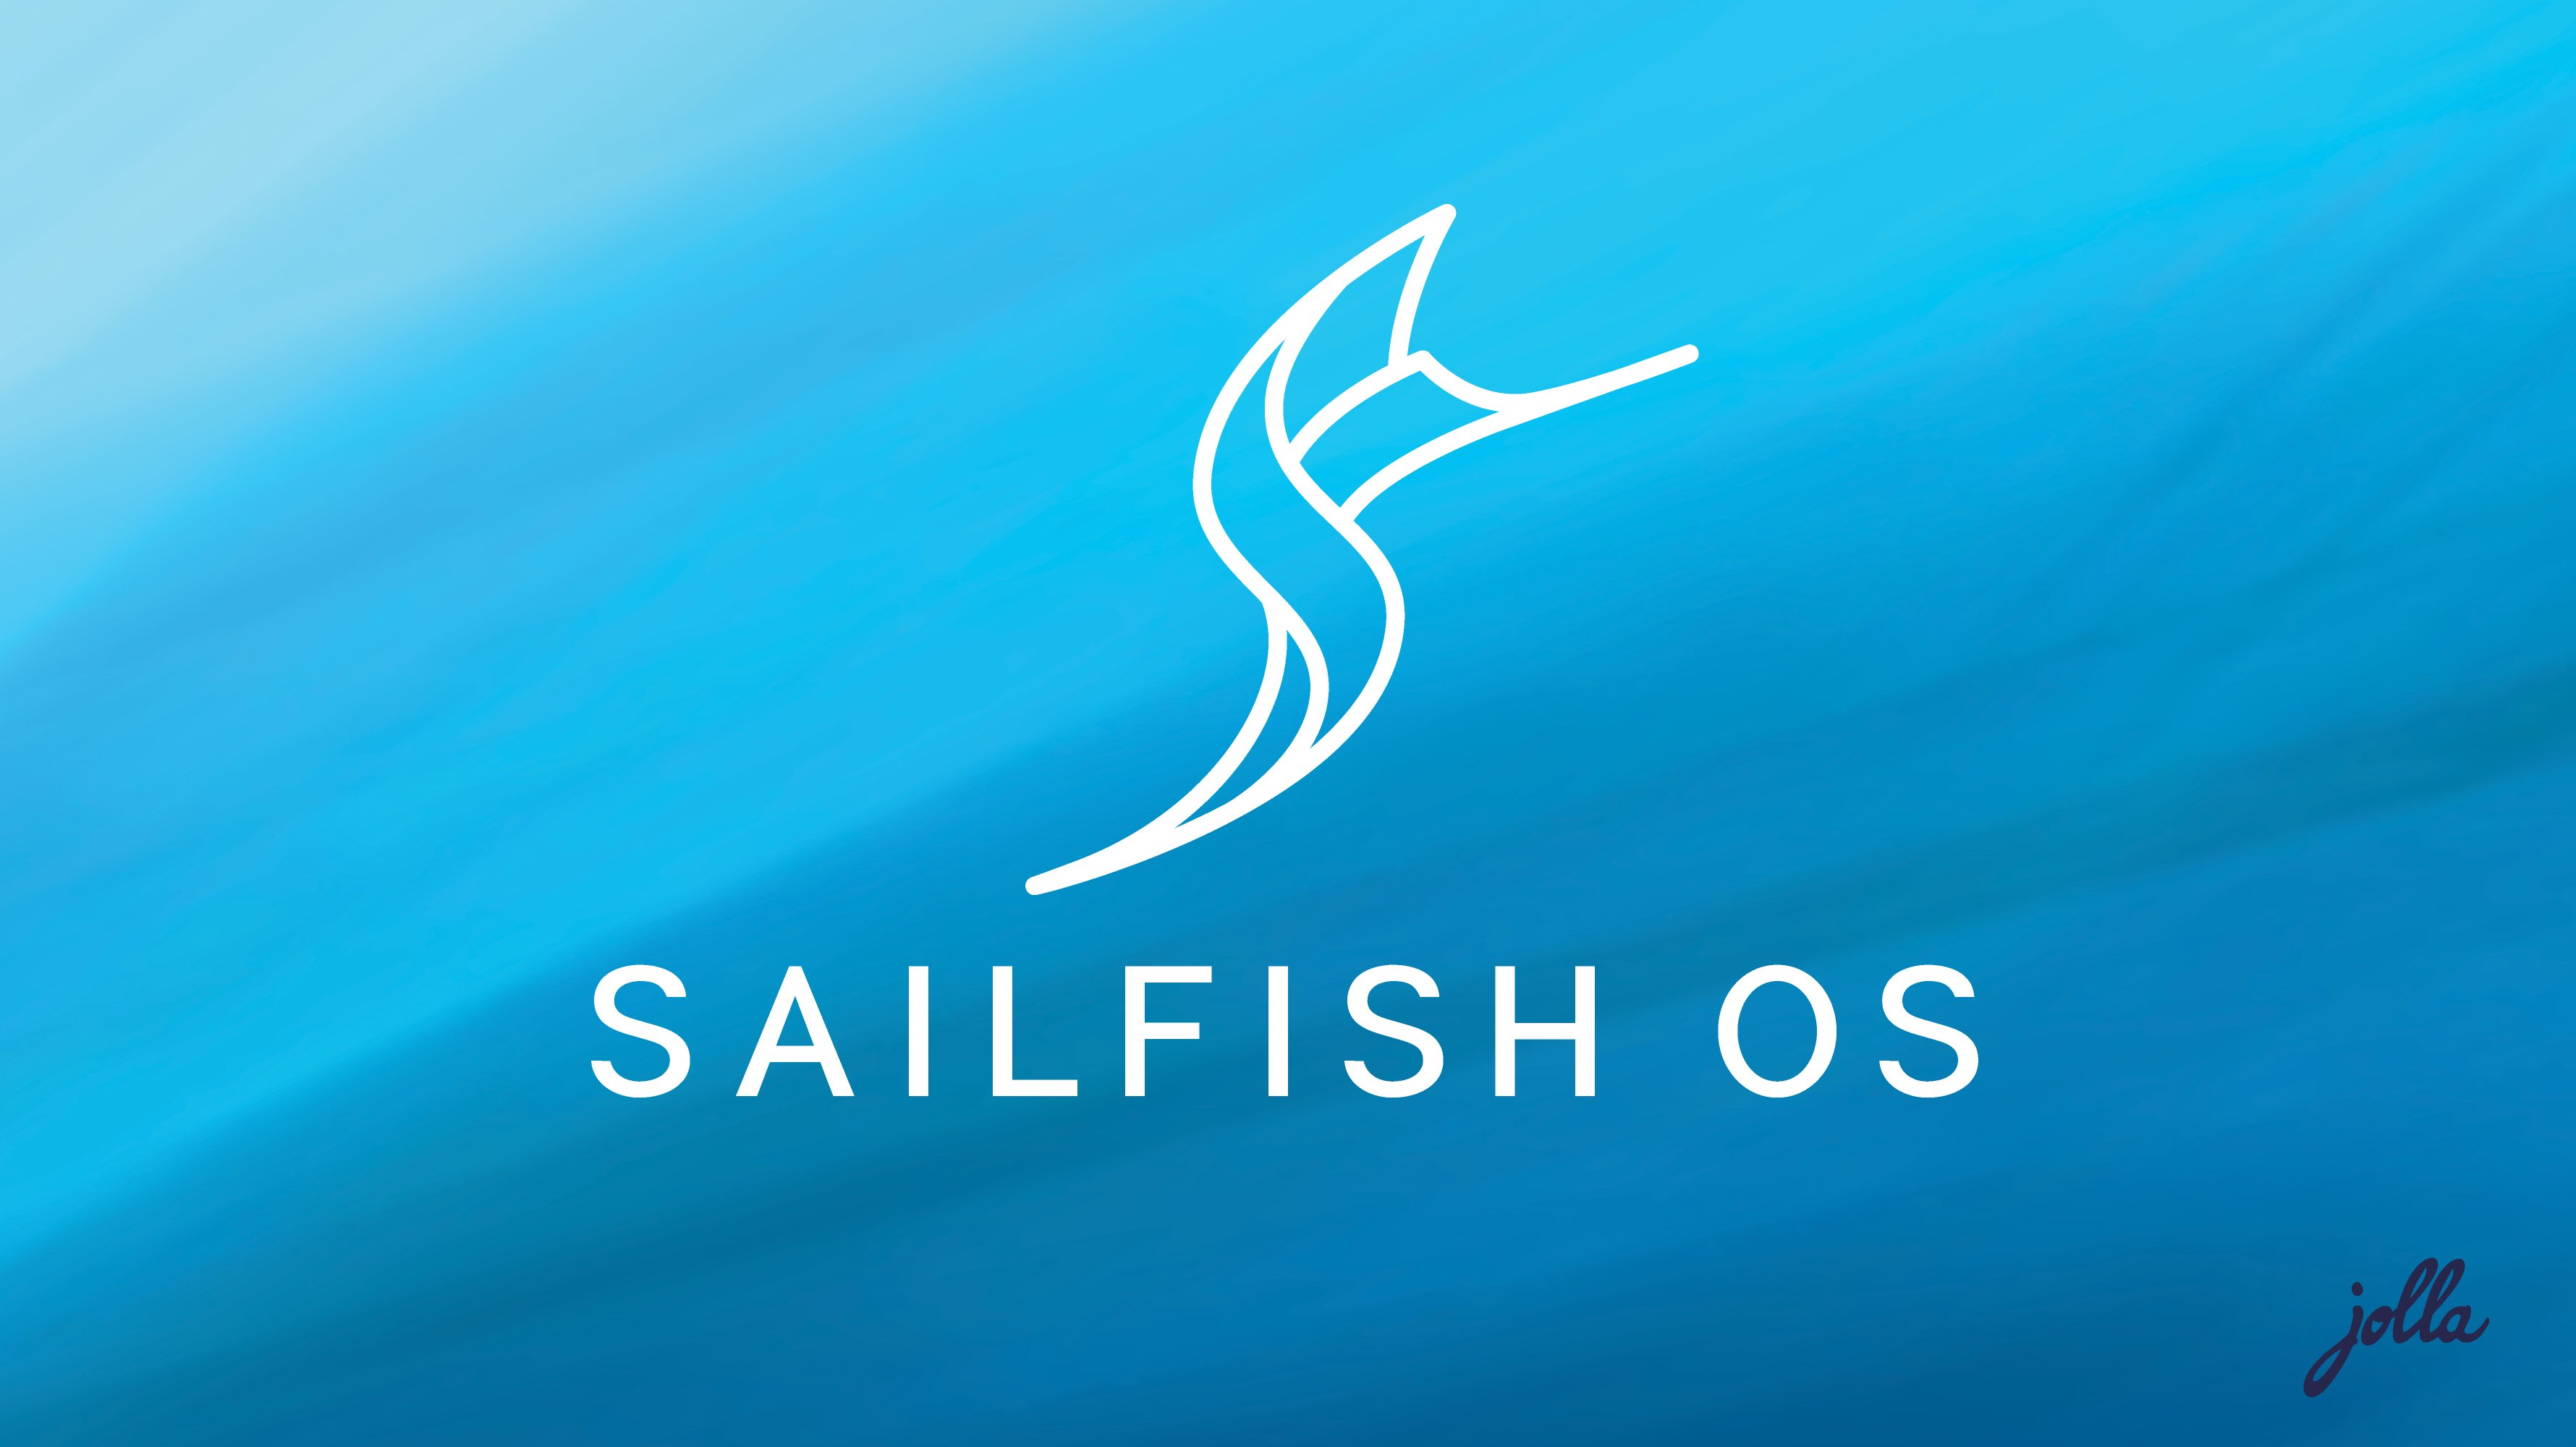 Sailfish 3